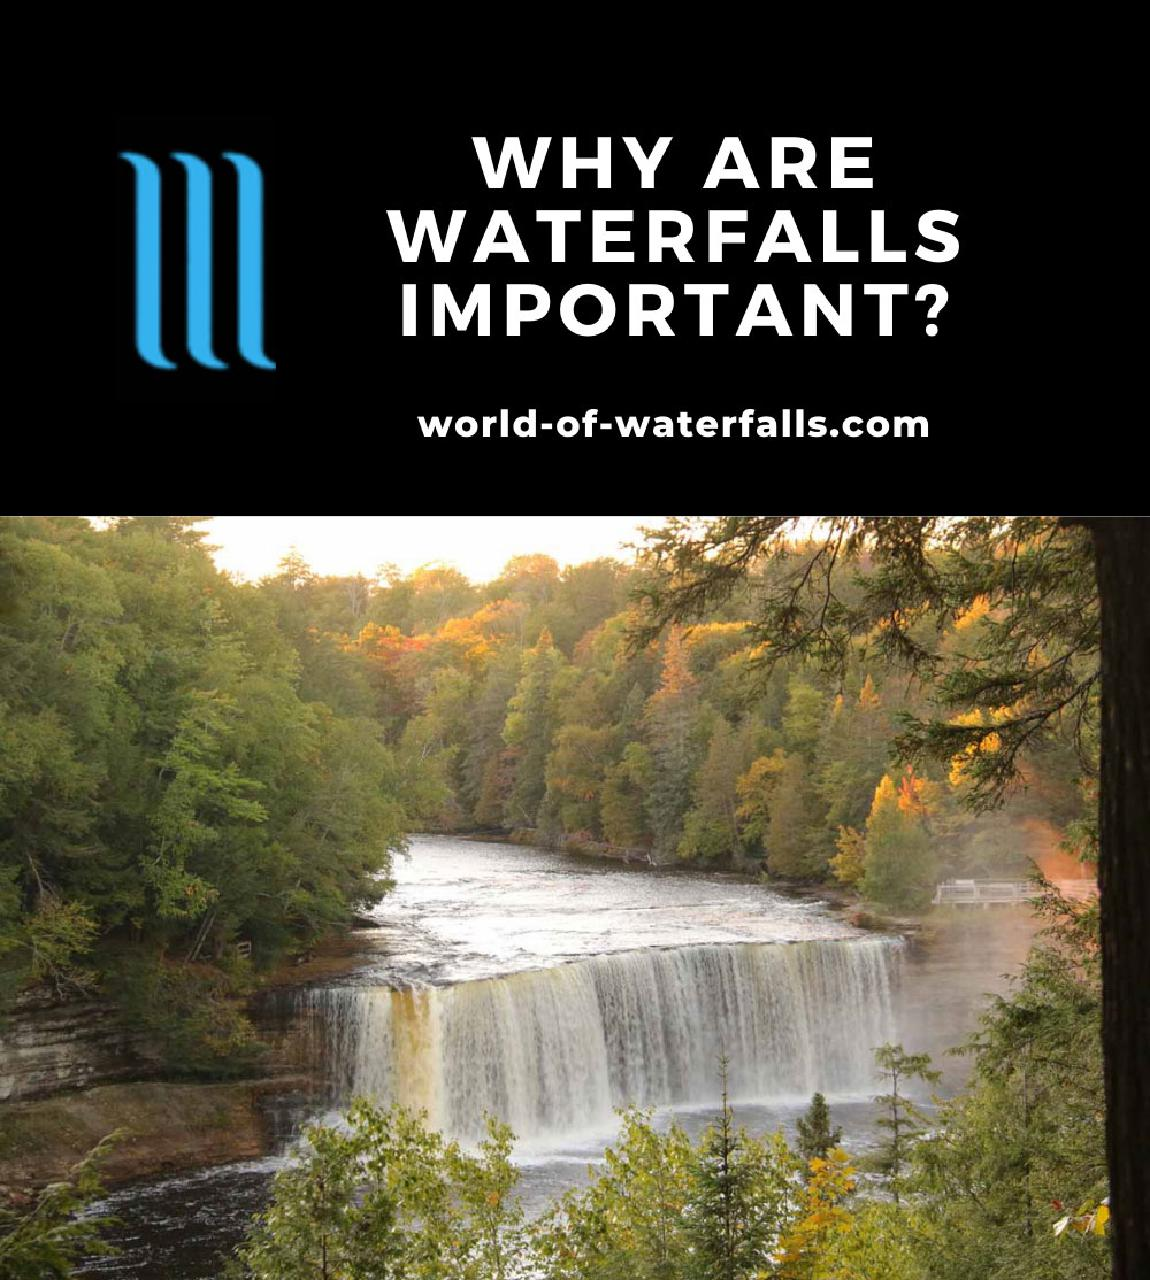 Why Are Waterfalls Important?